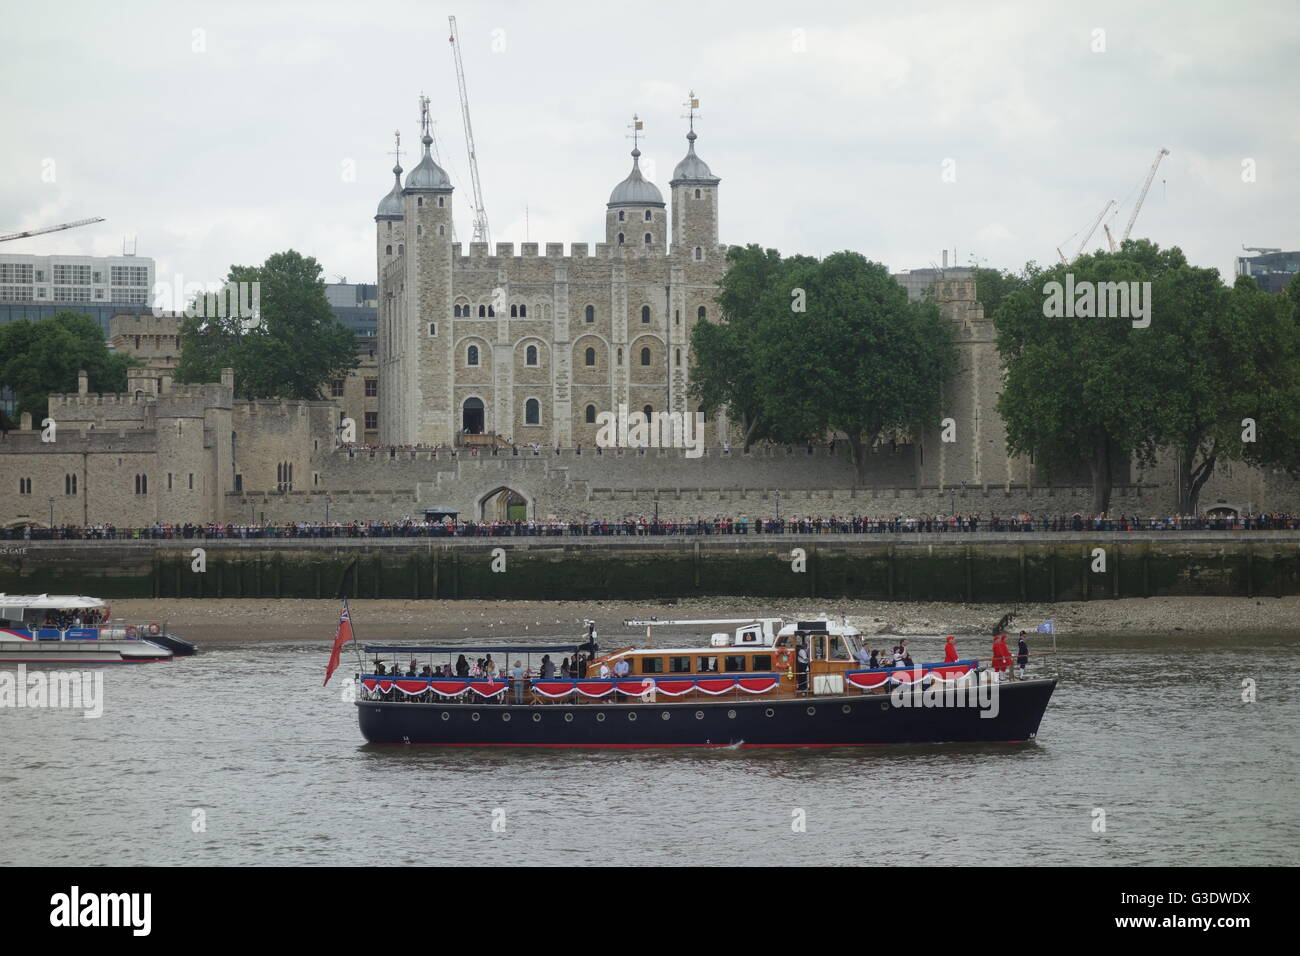 Havengore, Tower of London, River Thames, UK - Her Majesty the Queen's 90th Birthday Celebrations - Stock Image